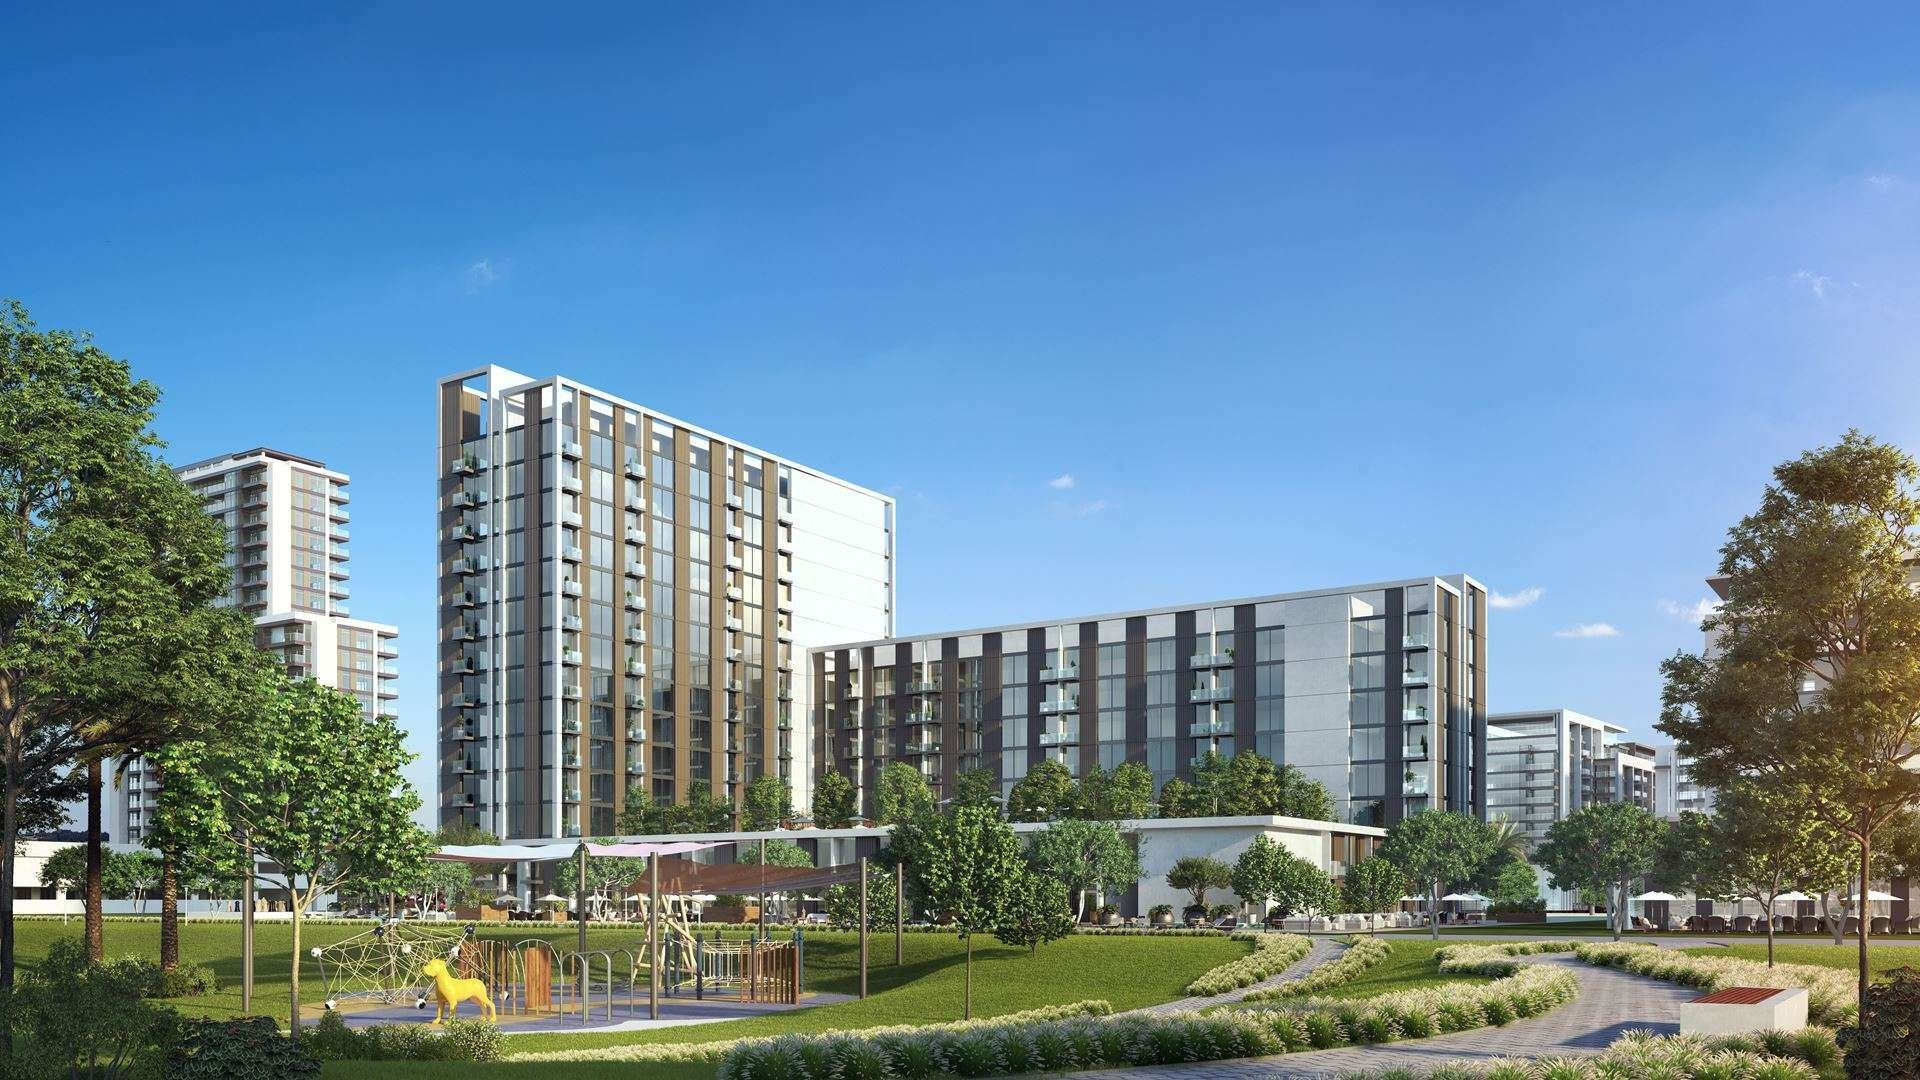 Introducing Golf Ville, a new residential development in